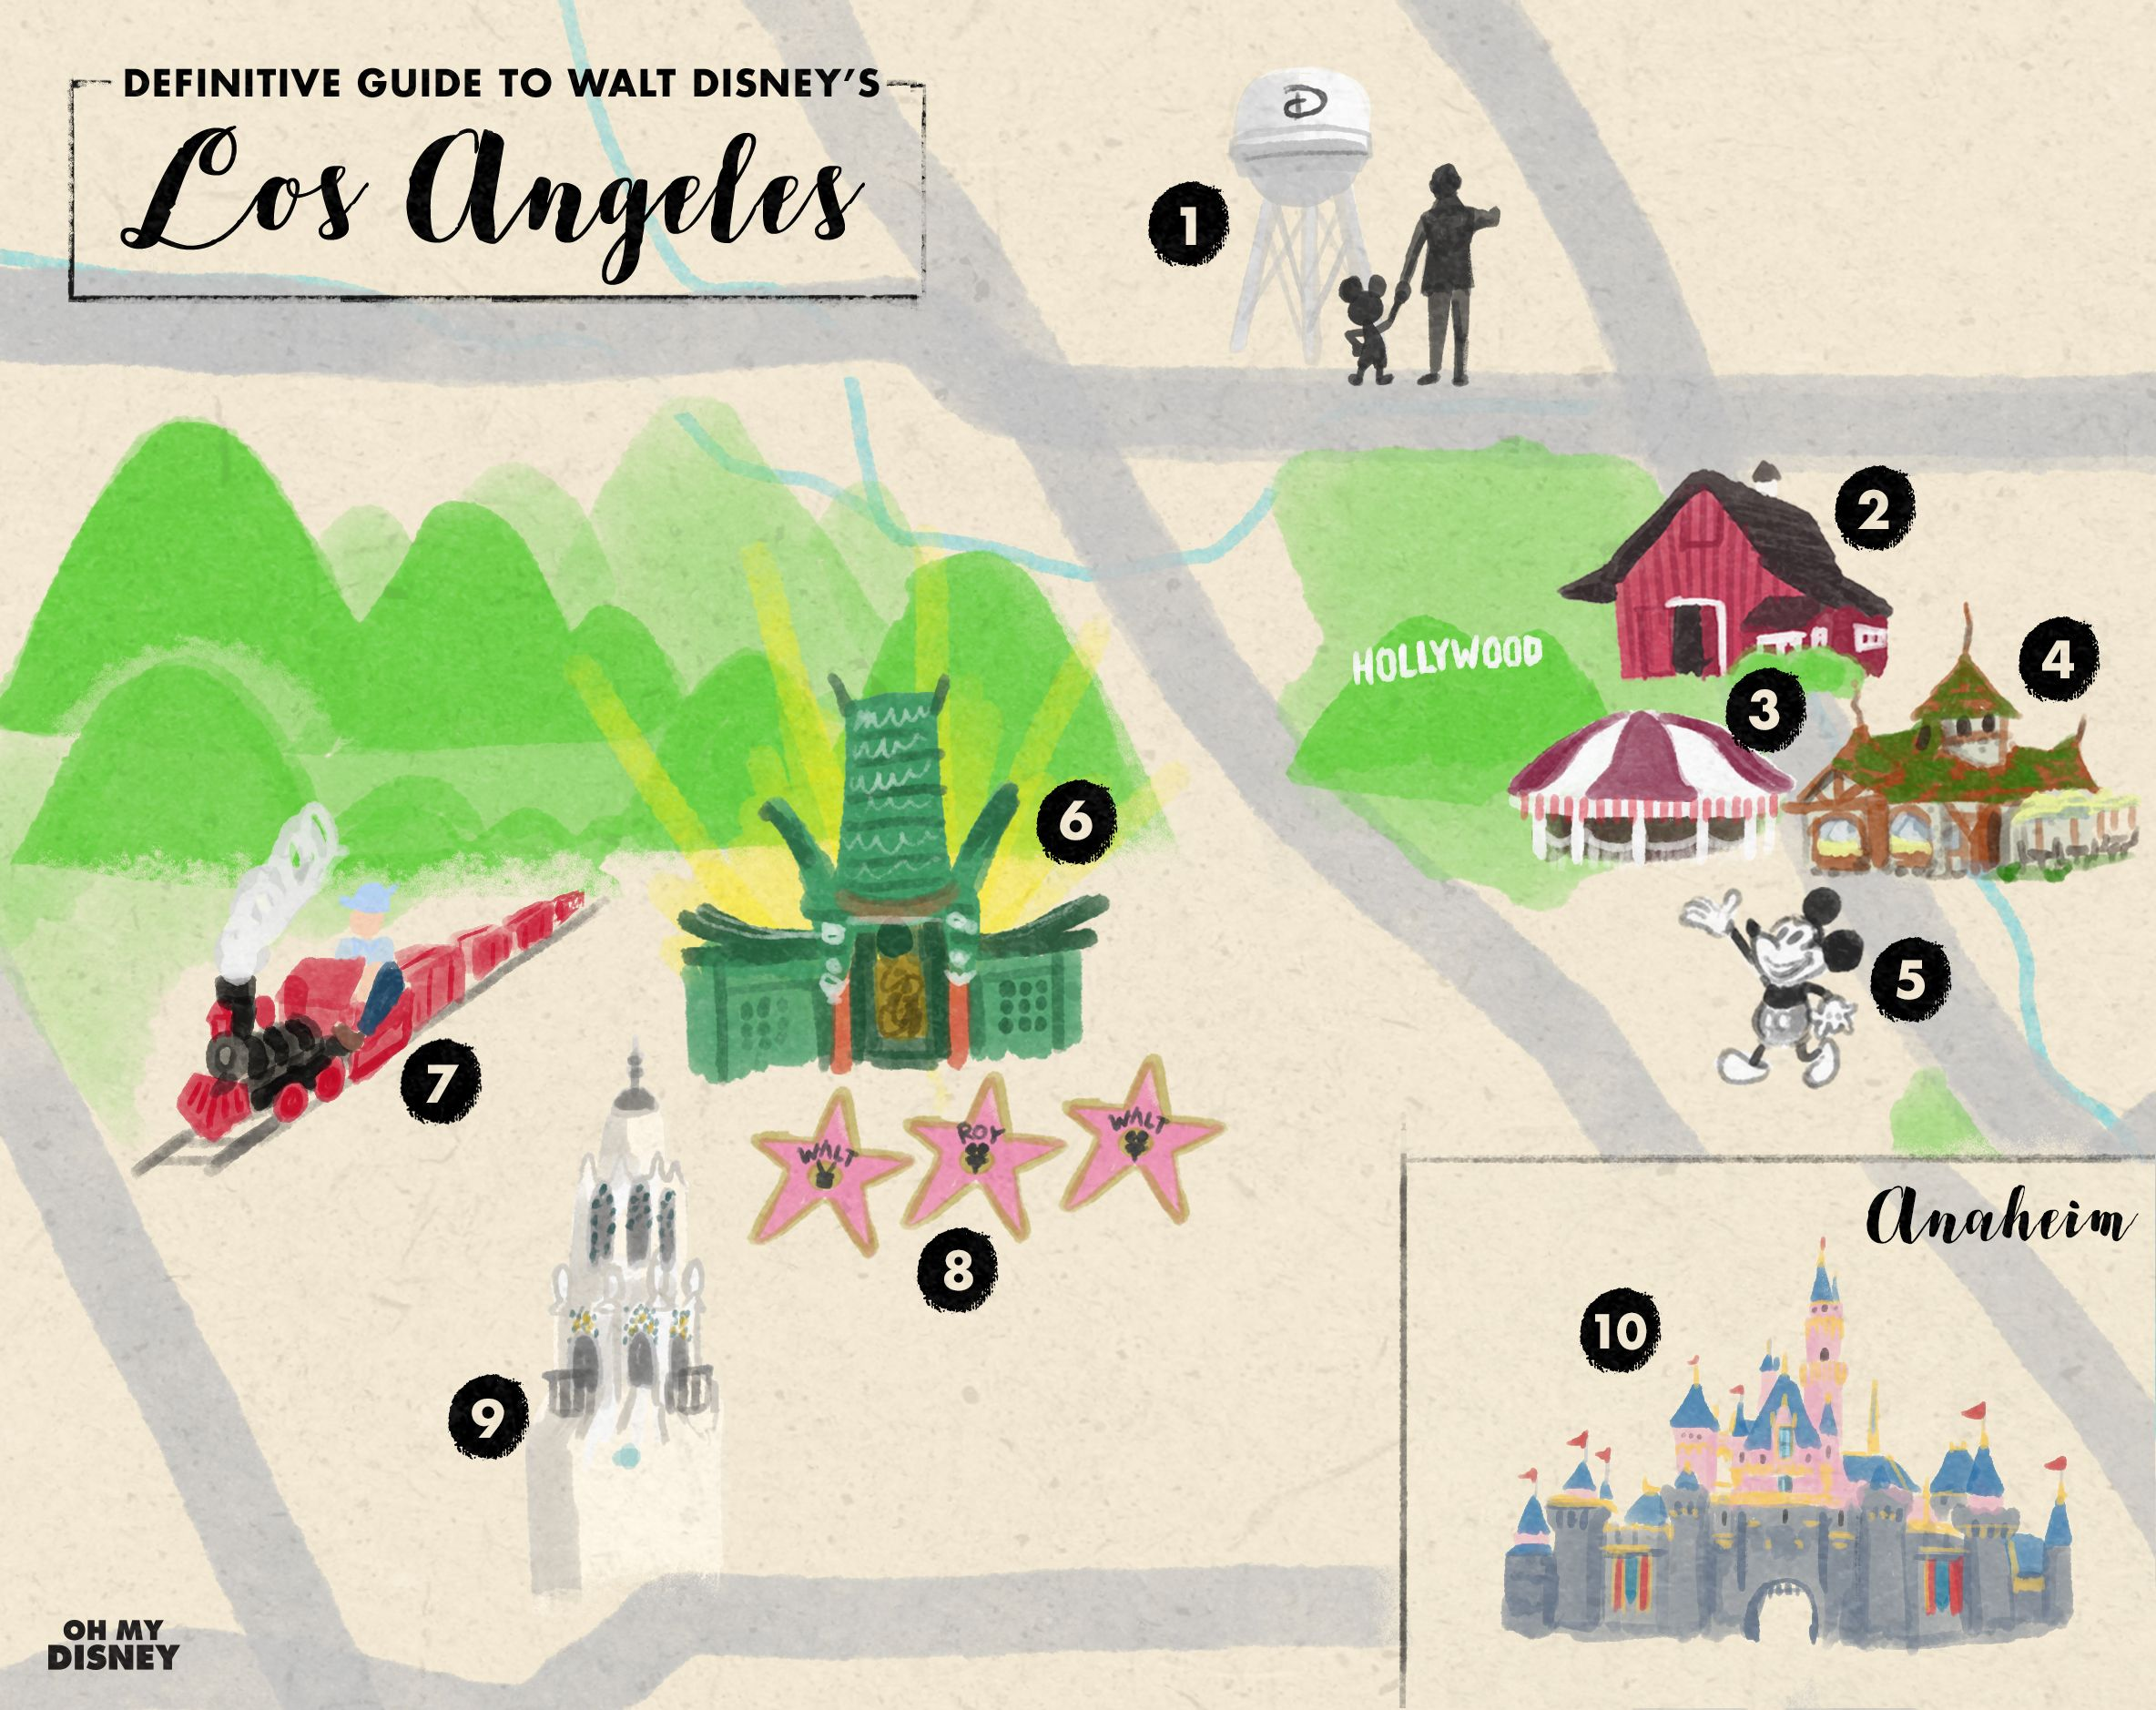 Disney Los Angeles Map.The Definitive Guide To Walt Disney S Los Angeles Disney